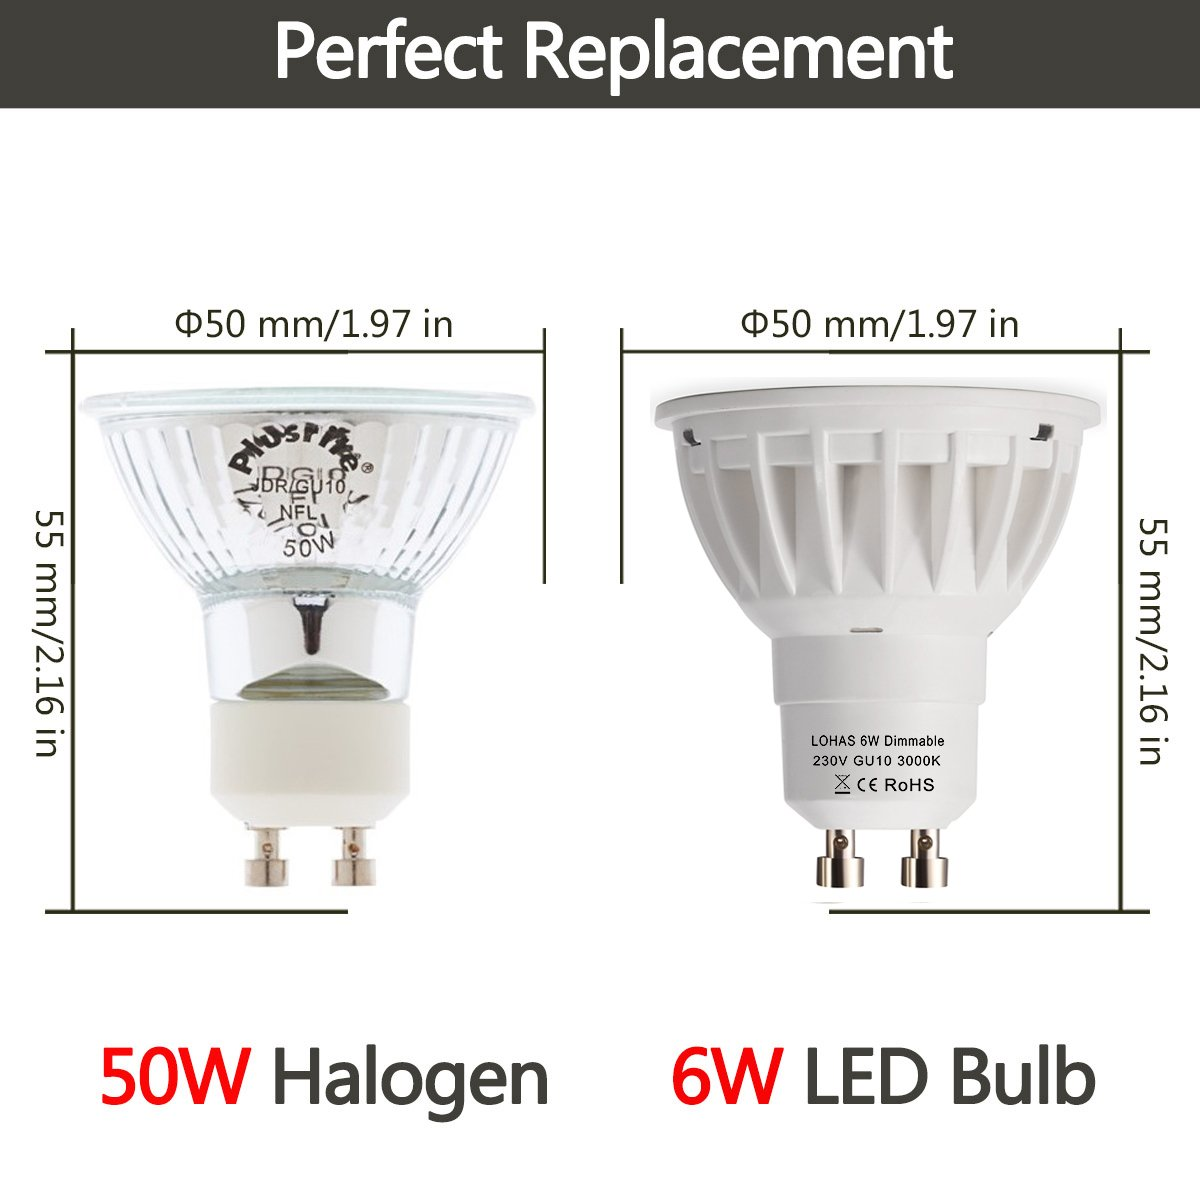 Lohas dimmable gu10 6w led beautiful 3000k warm white 50w lohas dimmable gu10 6w led beautiful 3000k warm white 50w replacement for halogen bulb120beam angleultra bright led light bulbs pack of 10 units mozeypictures Images